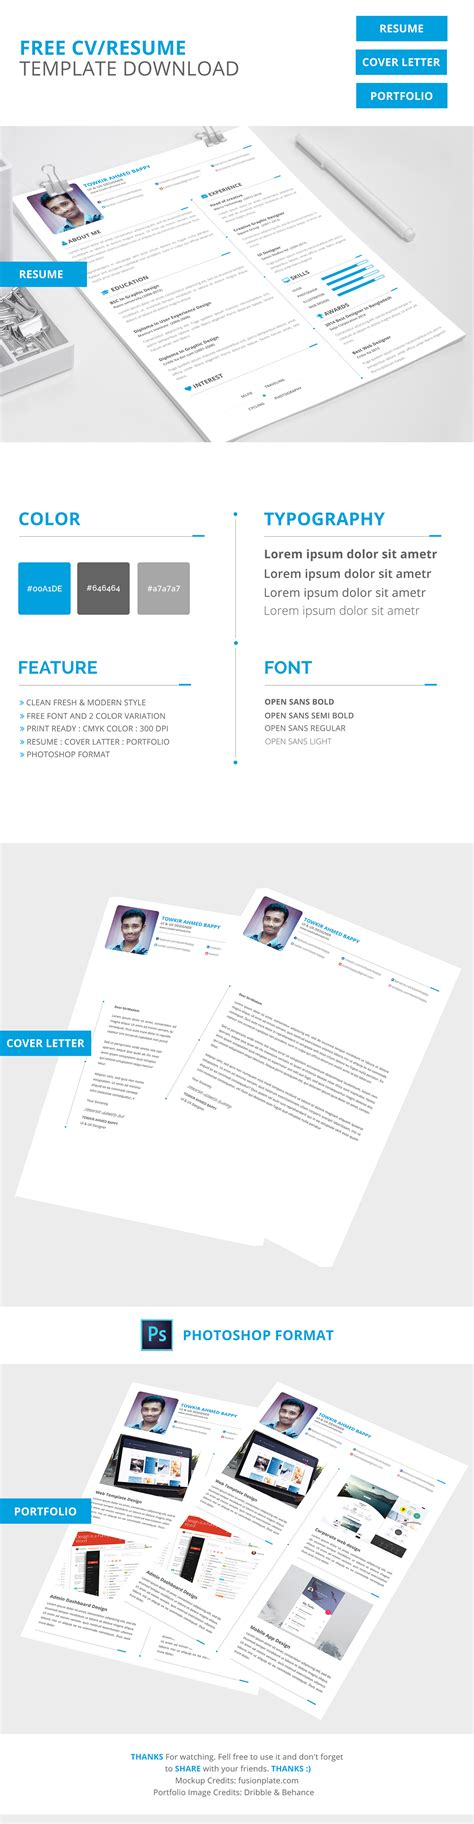 Free Creative Resume Cv Template Download On Behance Free Creative